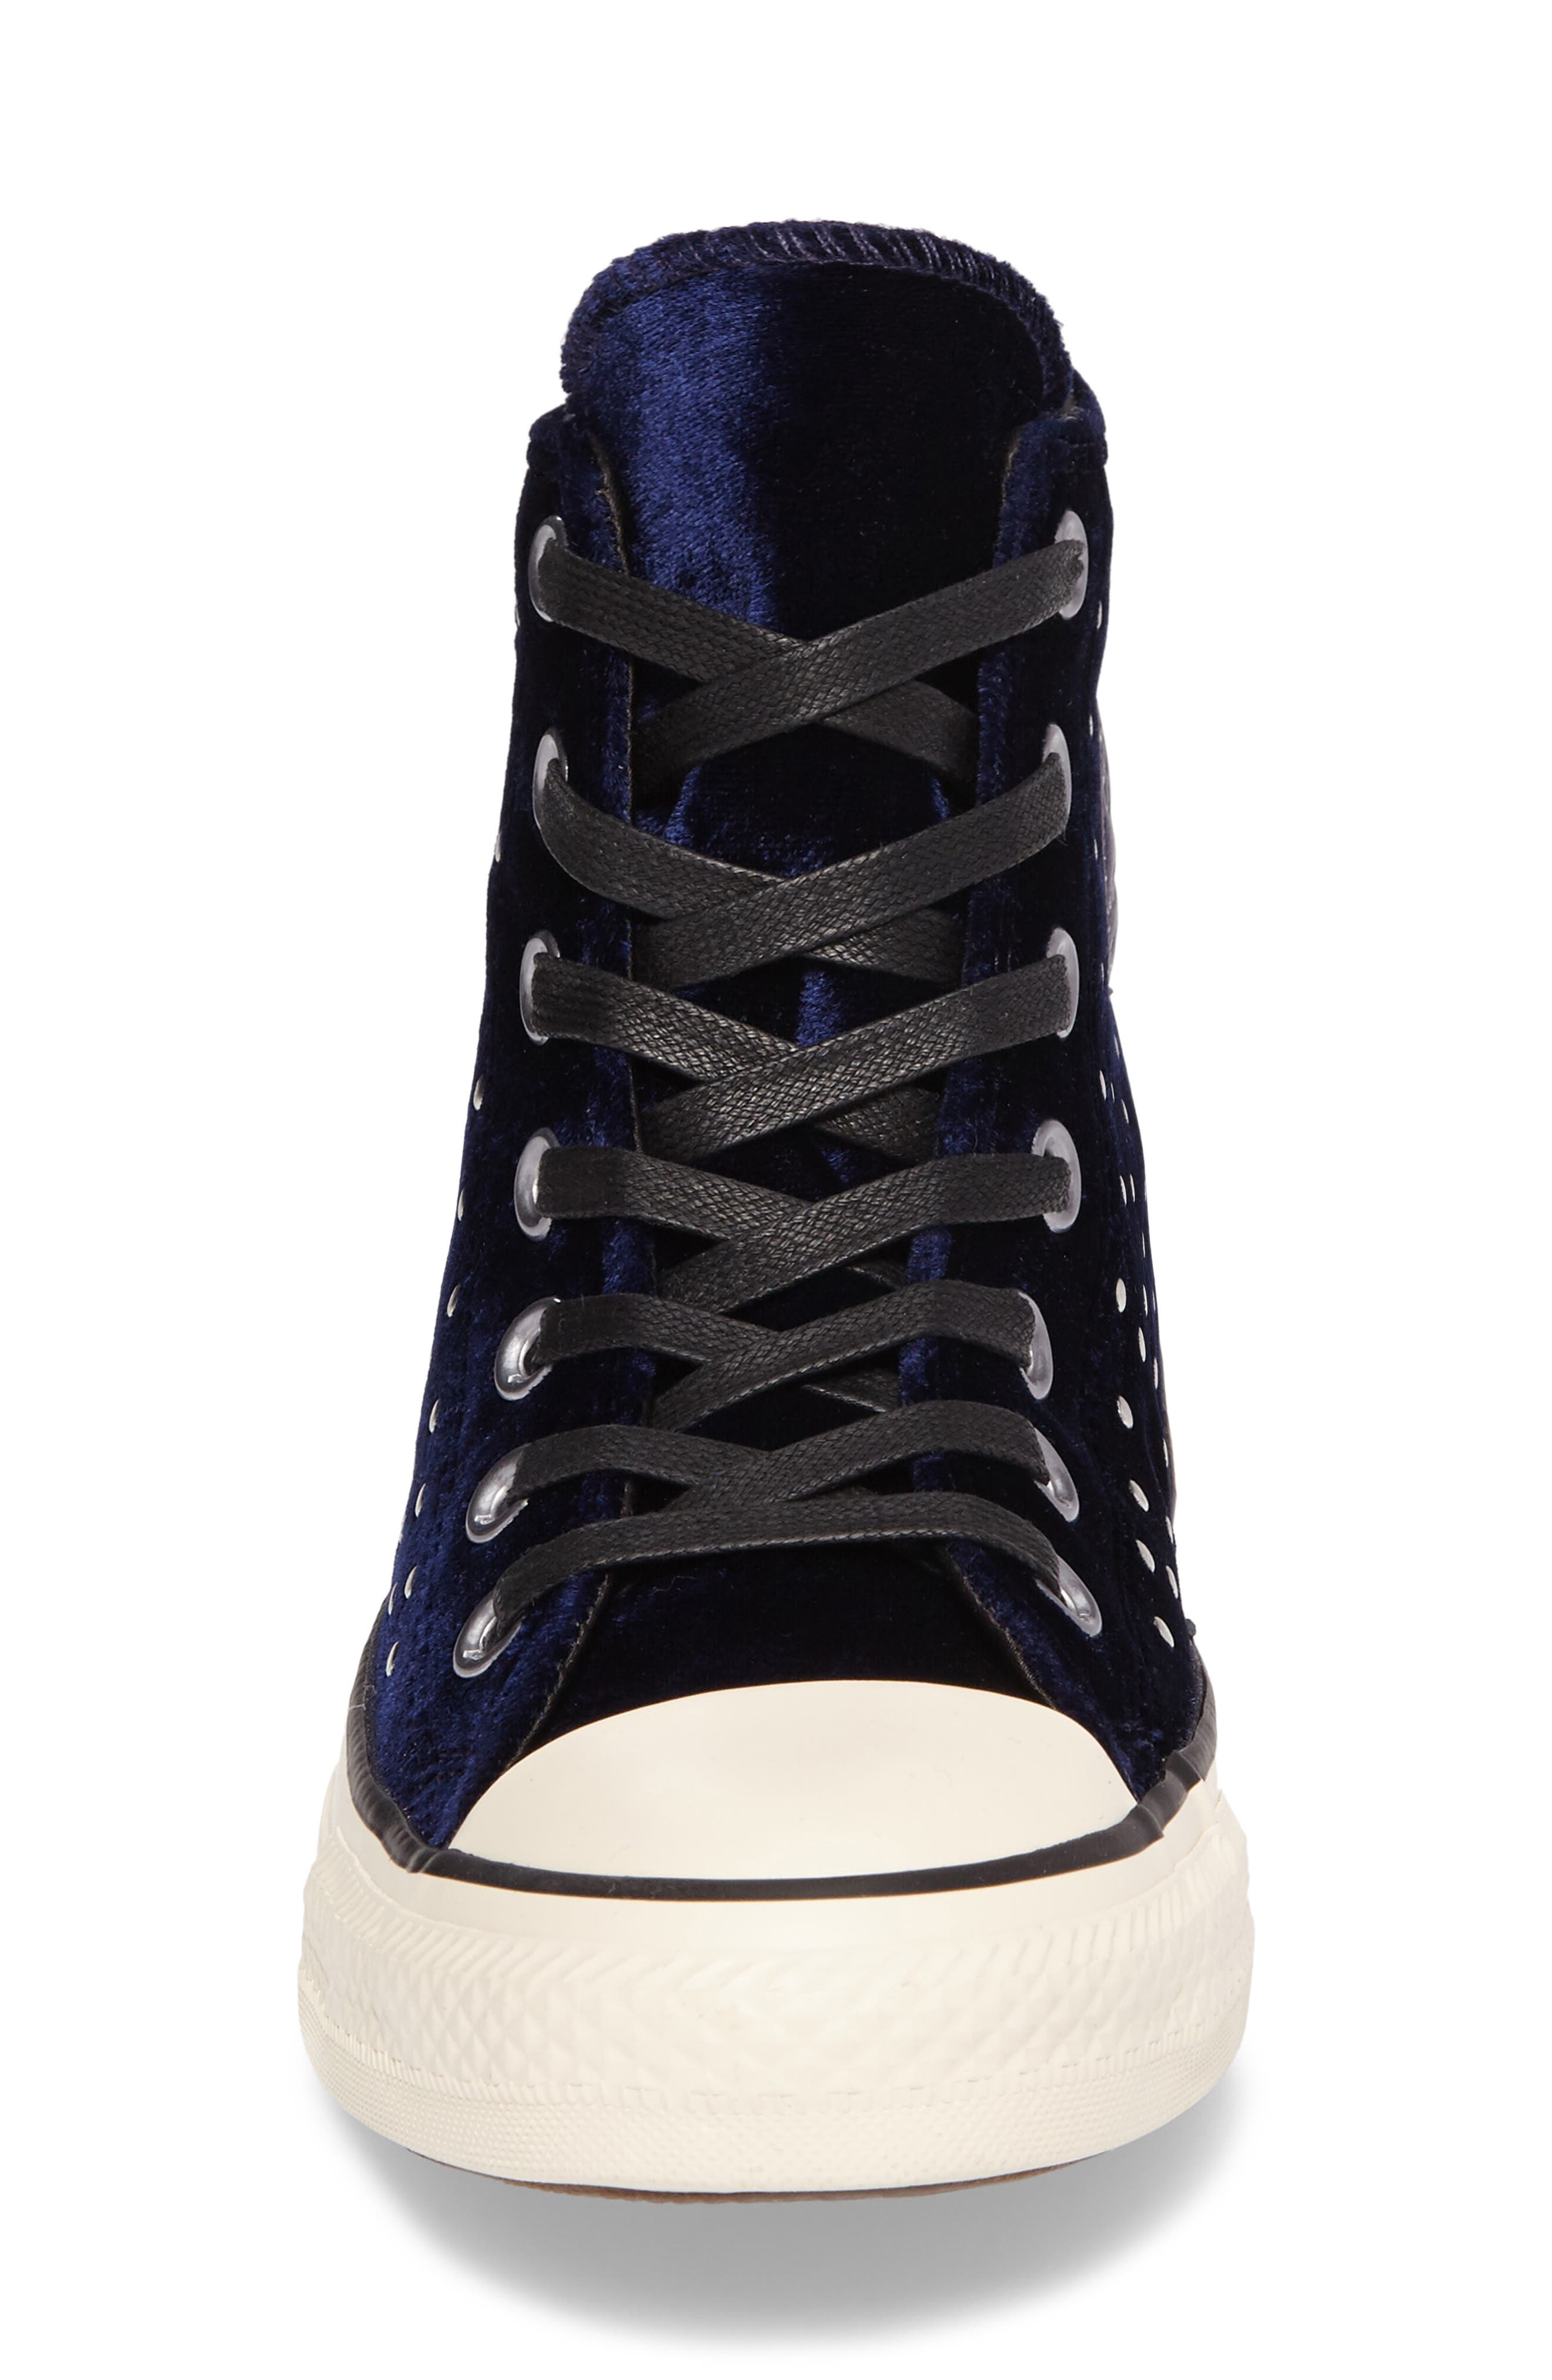 Chuck Taylor<sup>®</sup> All Star<sup>®</sup> Studded High Top Sneakers,                             Alternate thumbnail 4, color,                             Eclipse Velvet